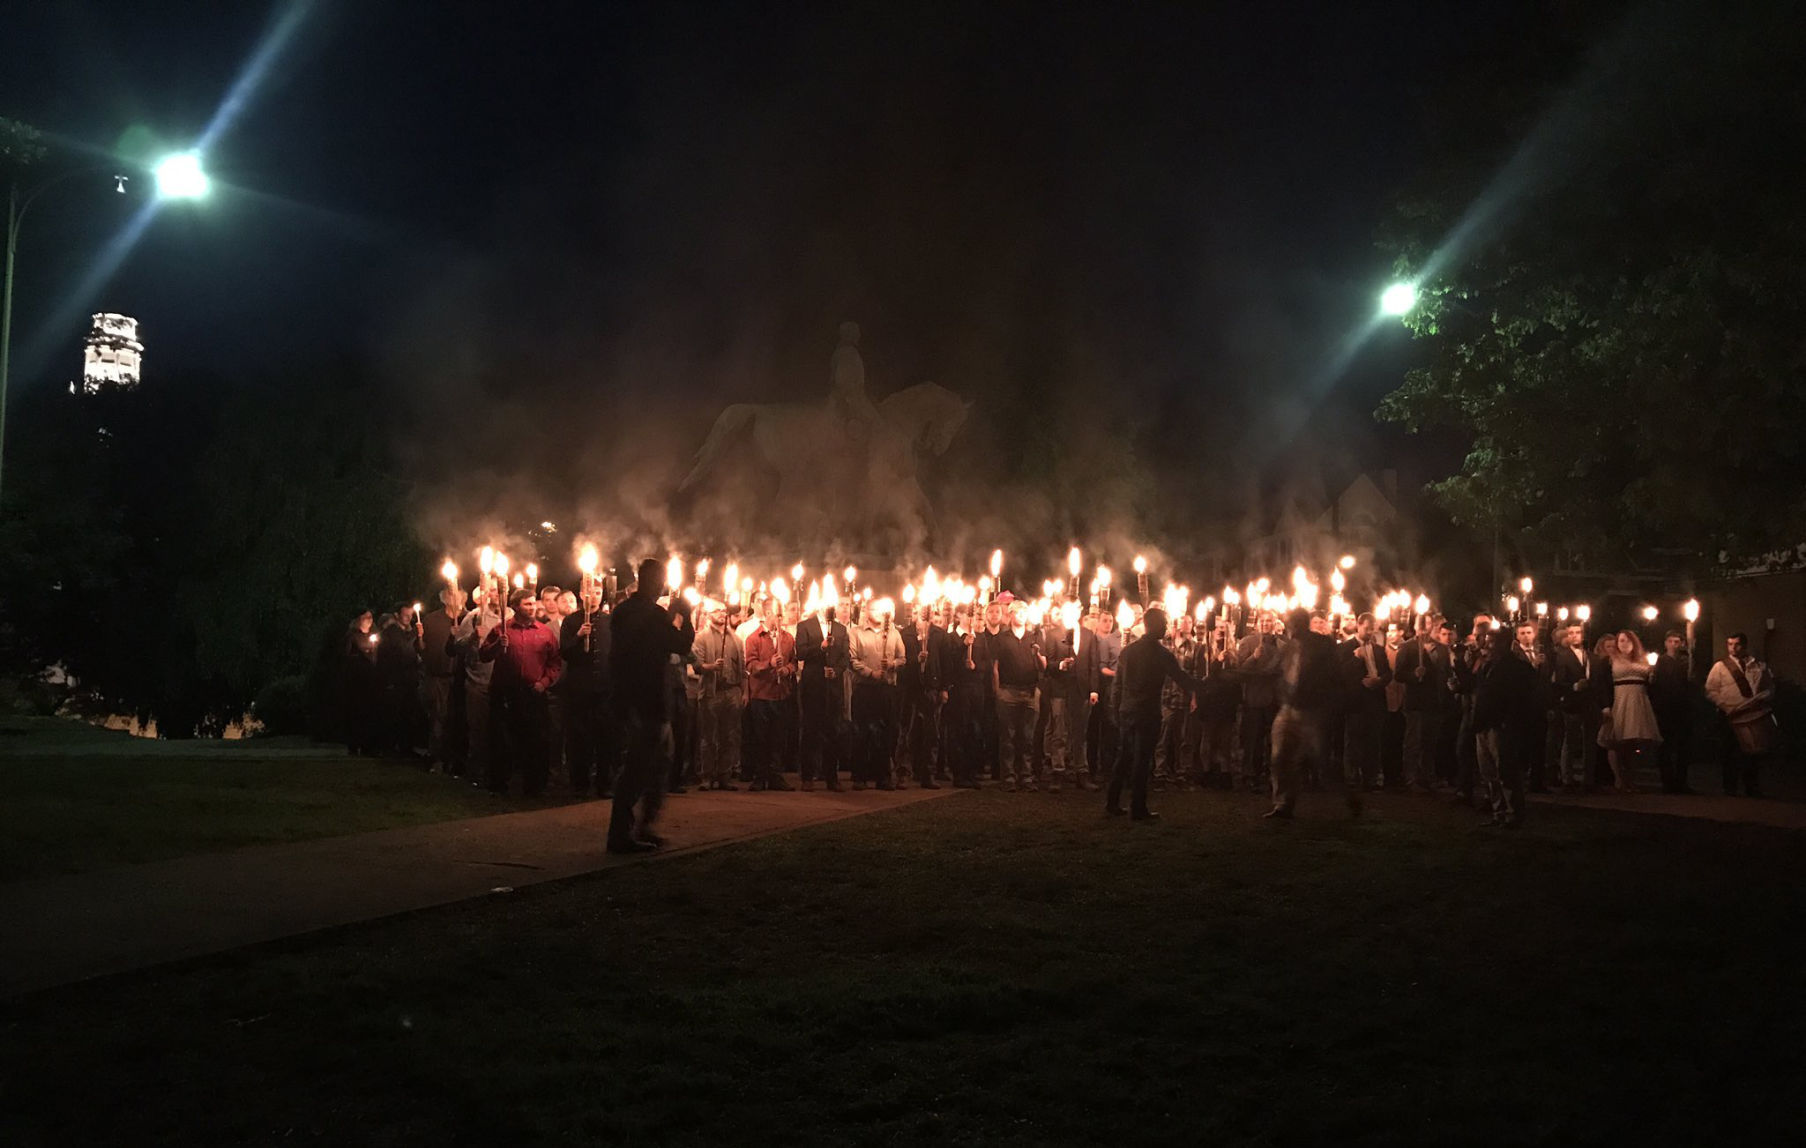 Torch-wielding mob at Lee Park